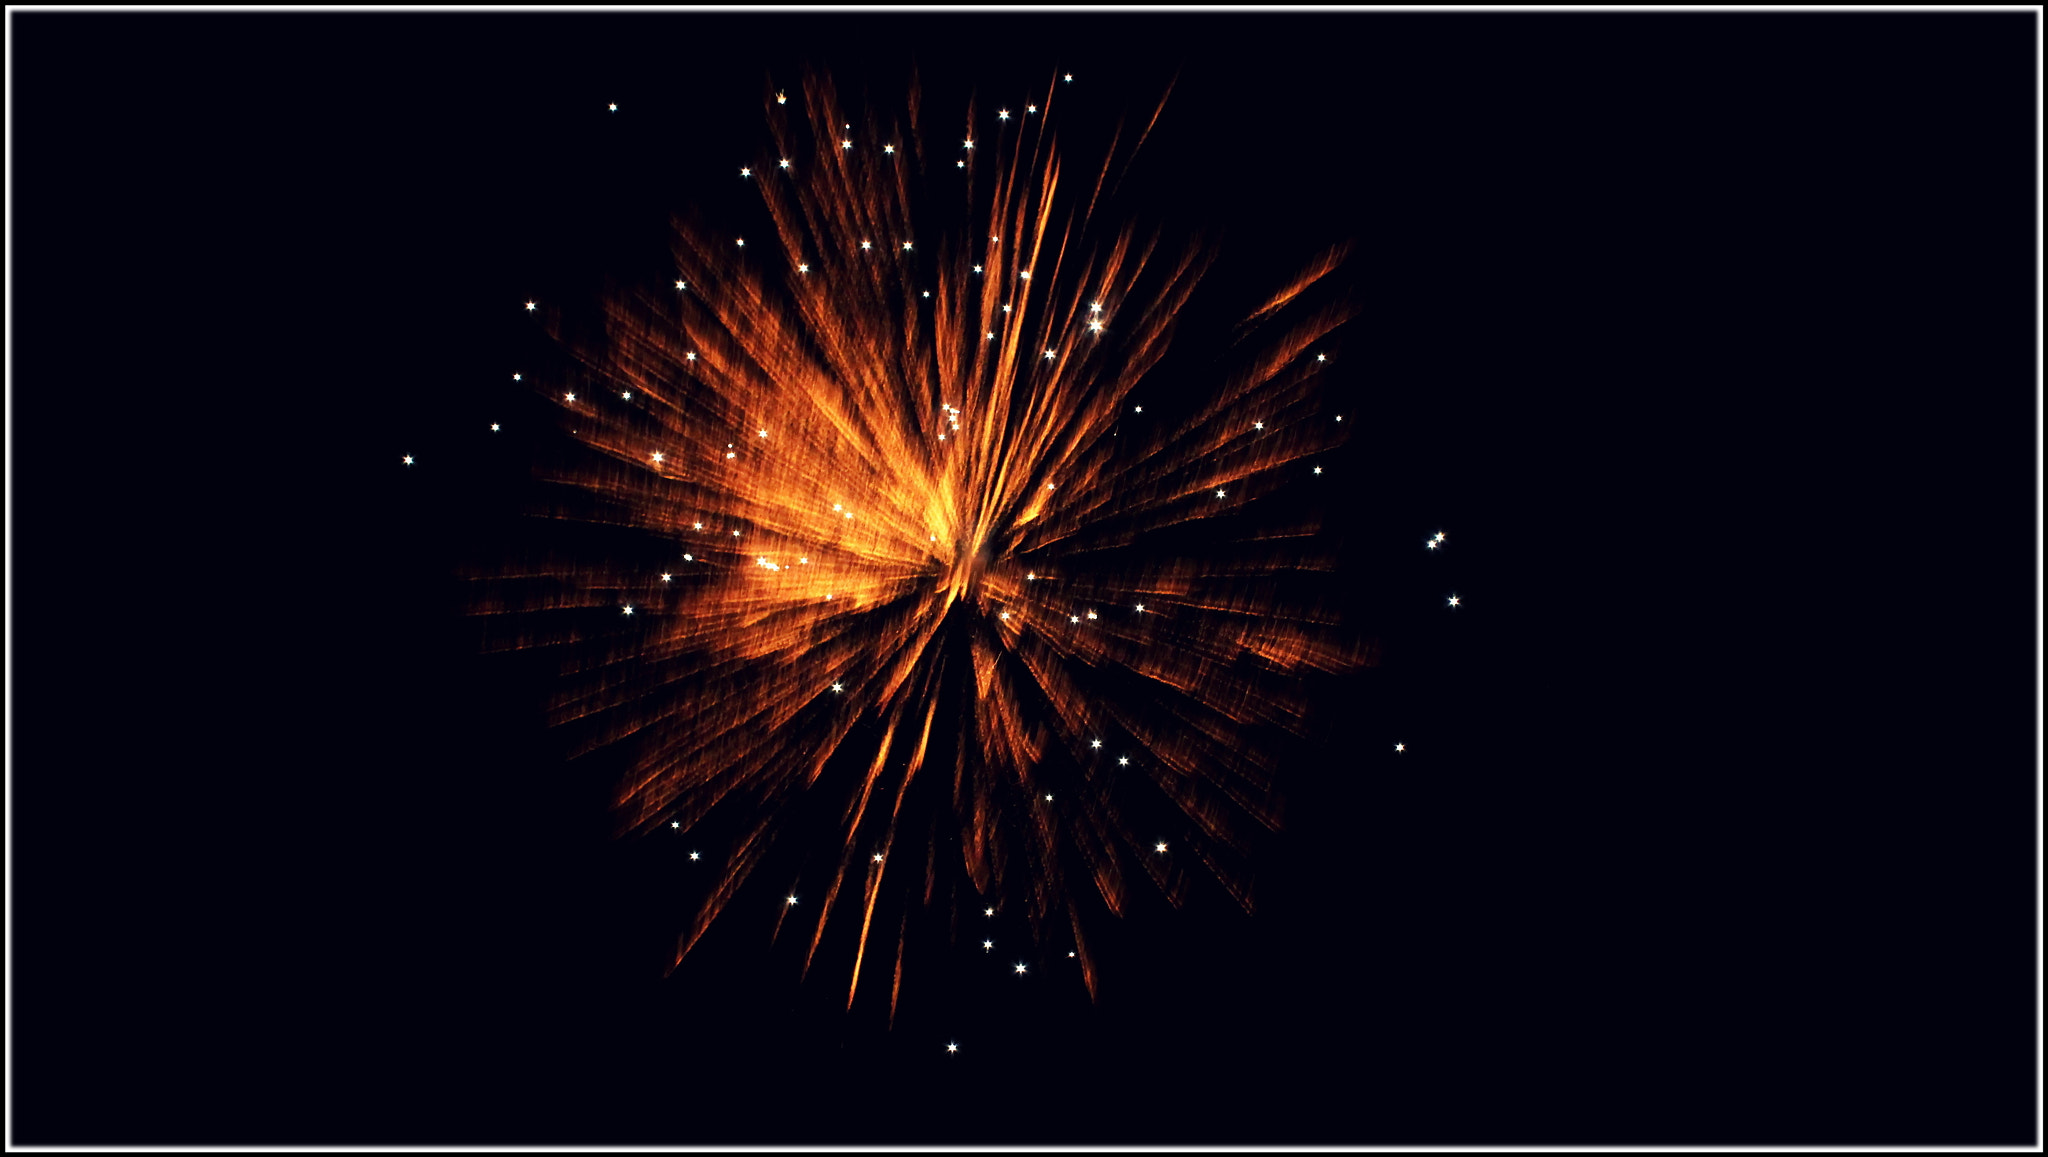 Photograph  BURST OF FIRE by SANKET JOSHI on 500px